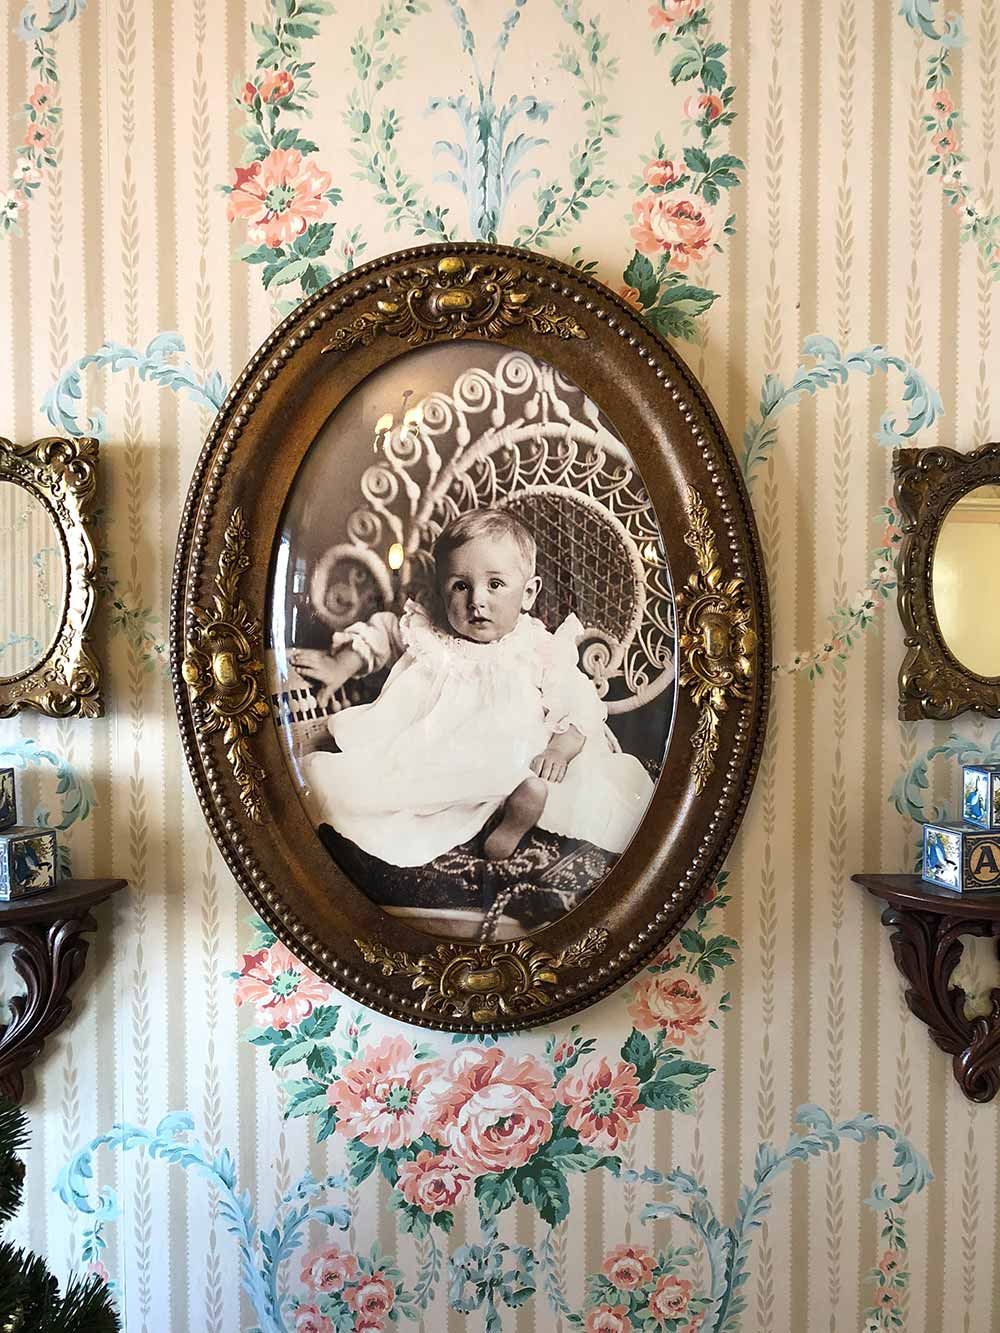 Fun Facts about Walt Disney Baby Photo